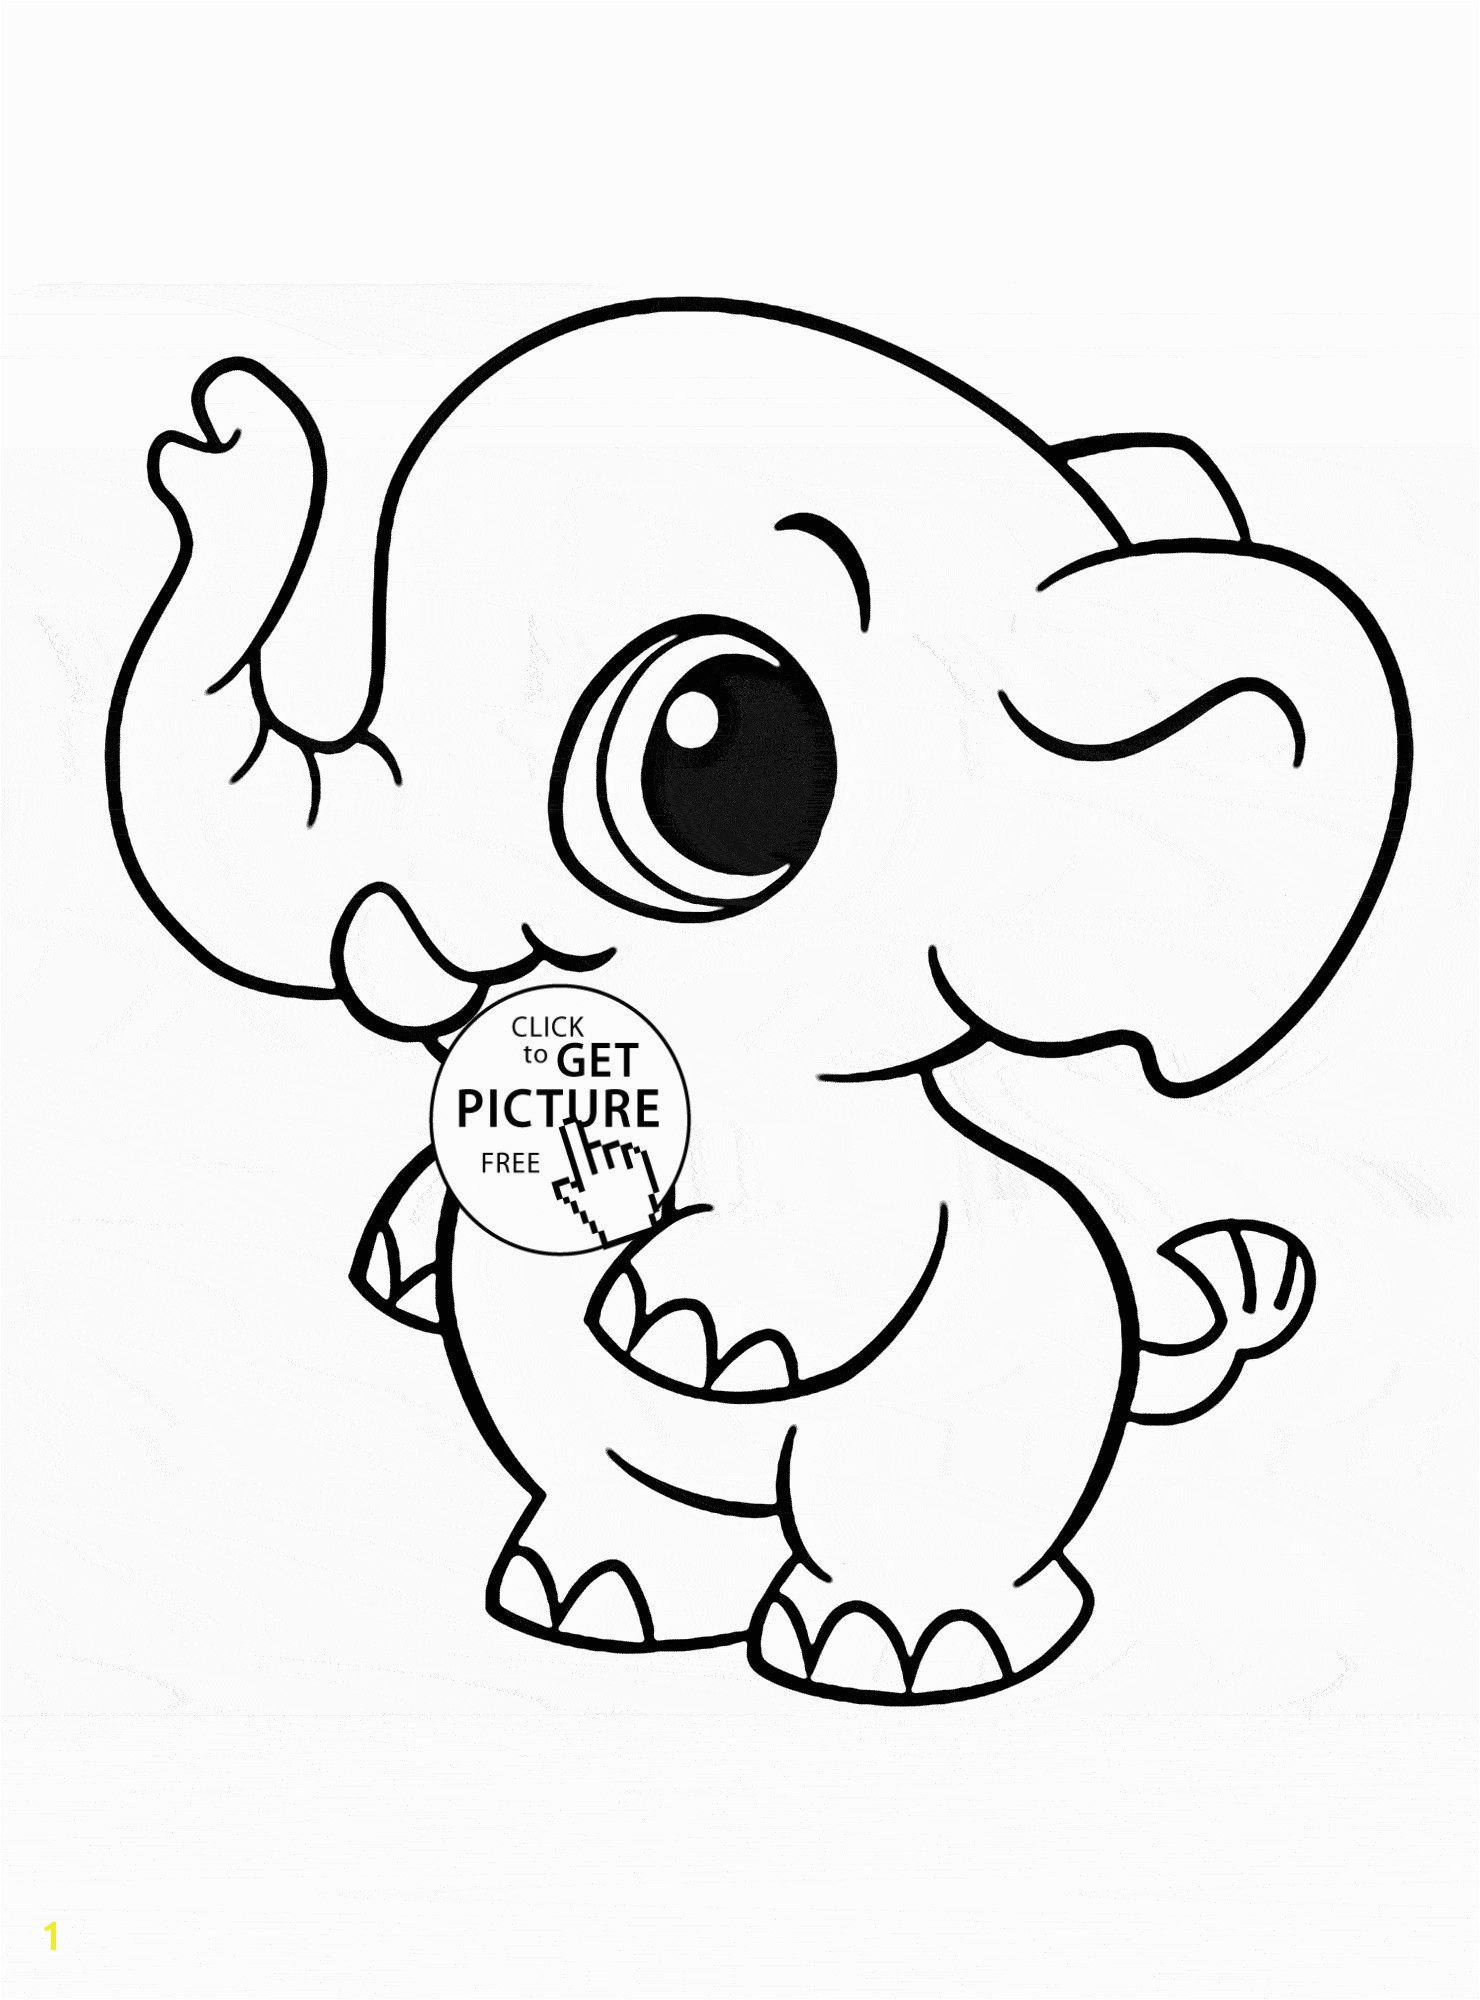 Cute Baby Animal Coloring Pages Elegant Baby Animal Coloring Pages Lovely Funny Animals Coloring Page Cute